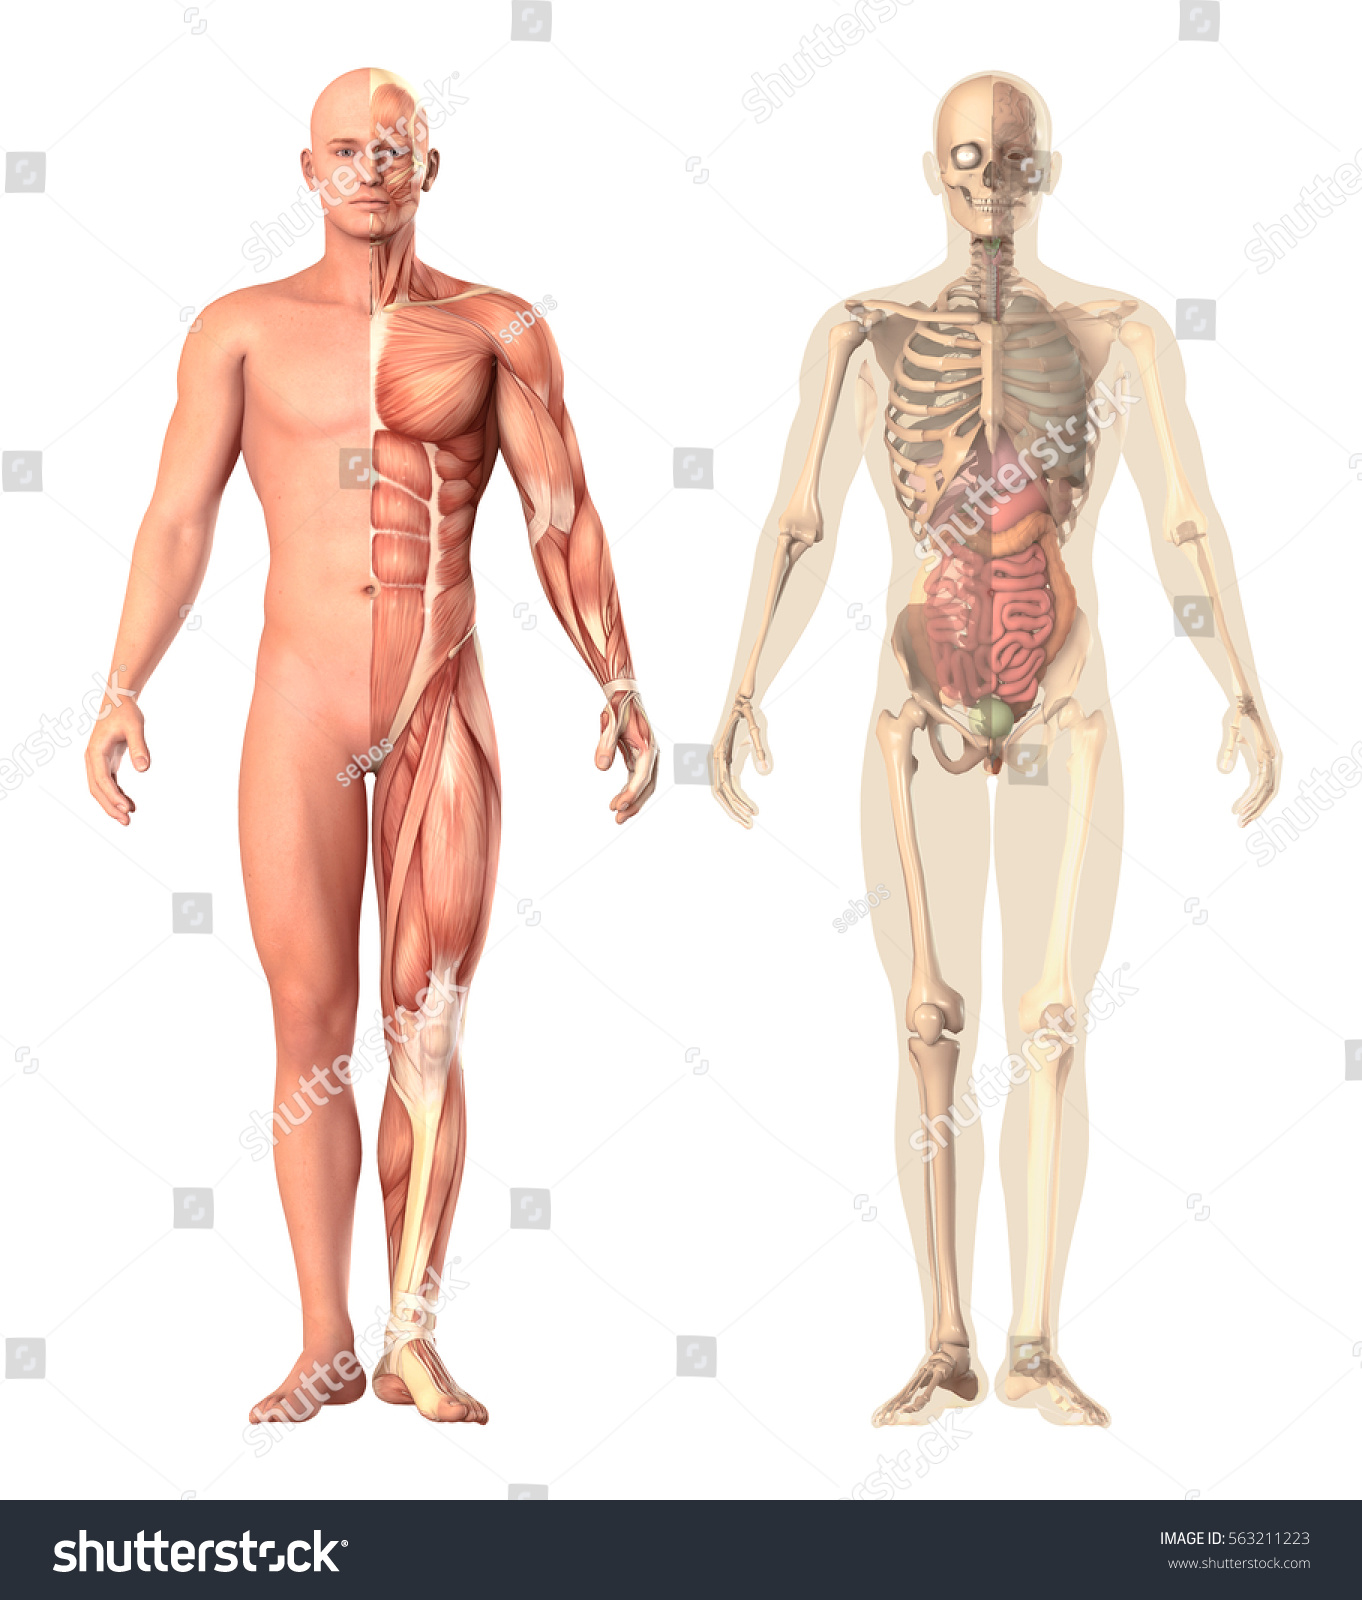 Medical Illustration Human Anatomy Transparency View Stock